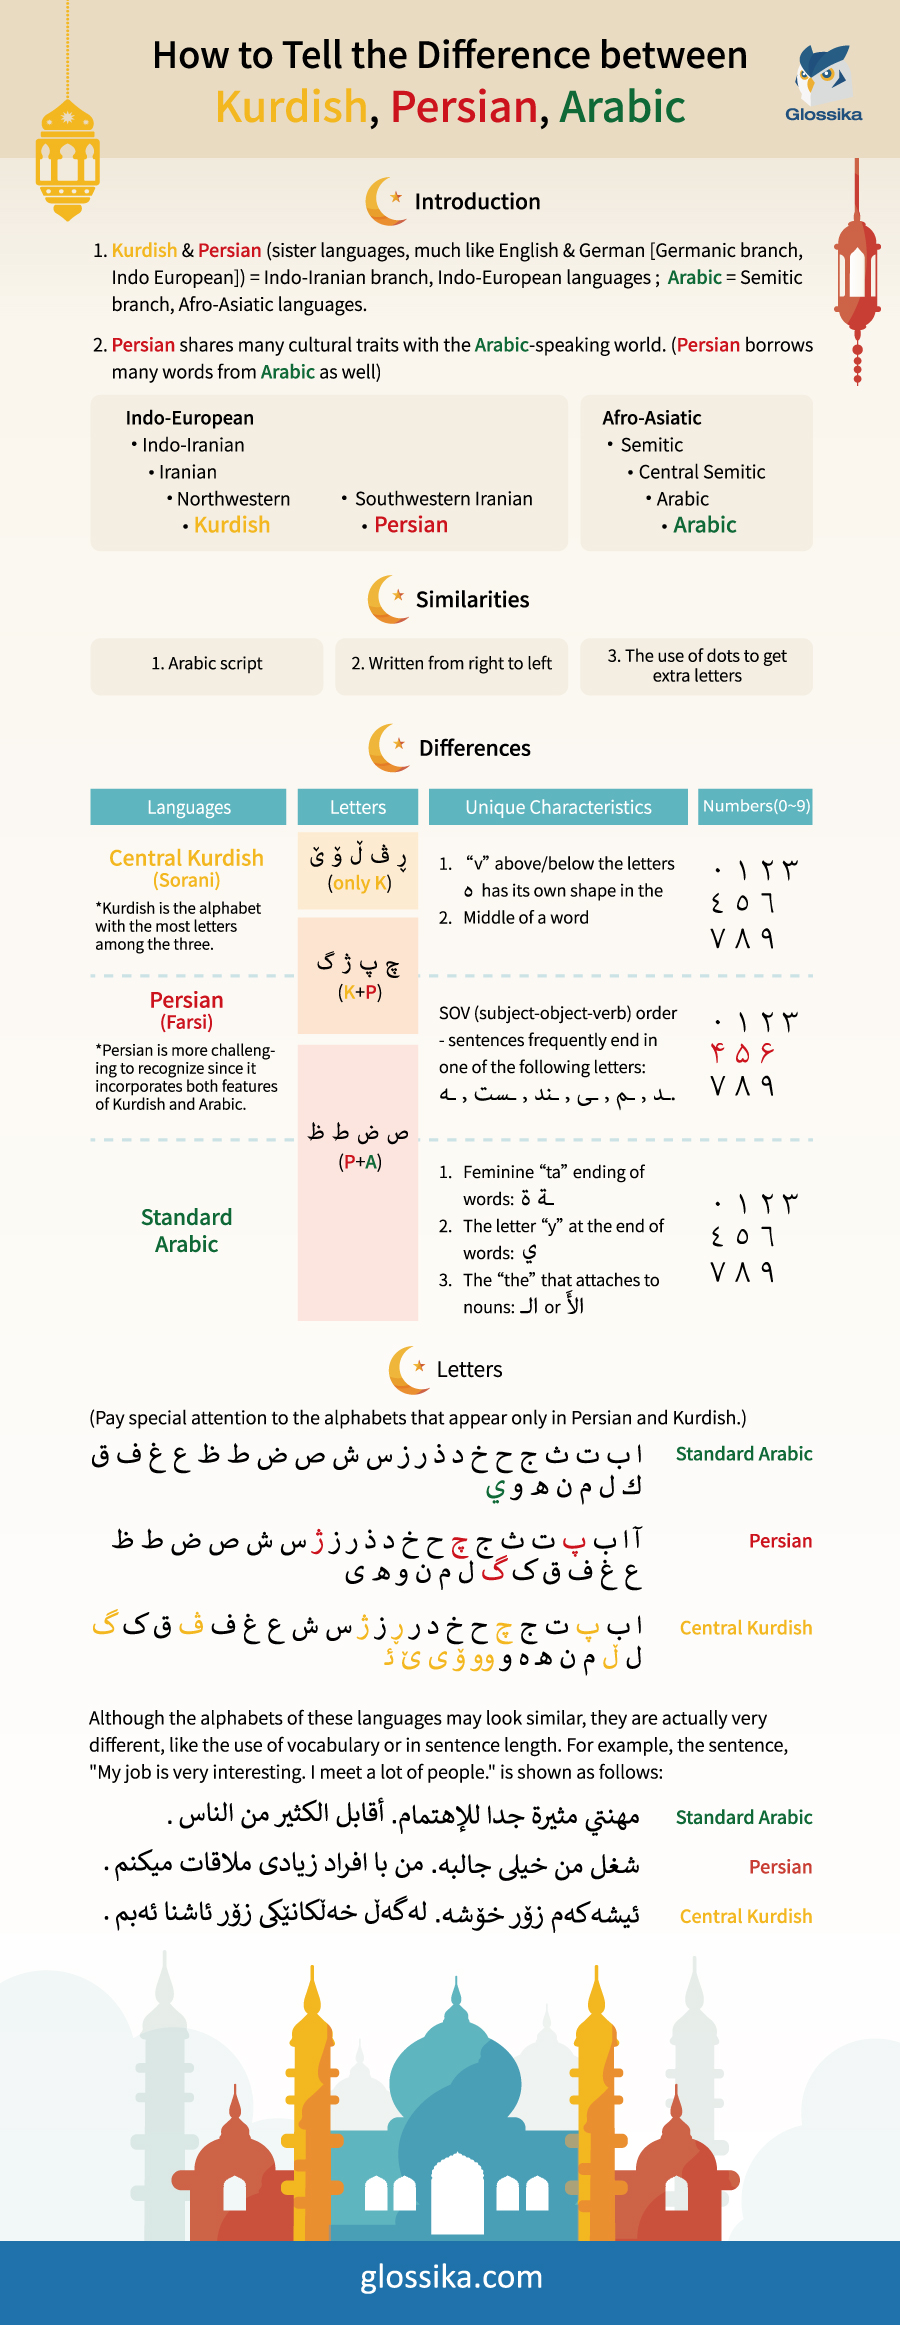 how_to_tell_the_difference_between_arabic_persian_kurdish_infographic